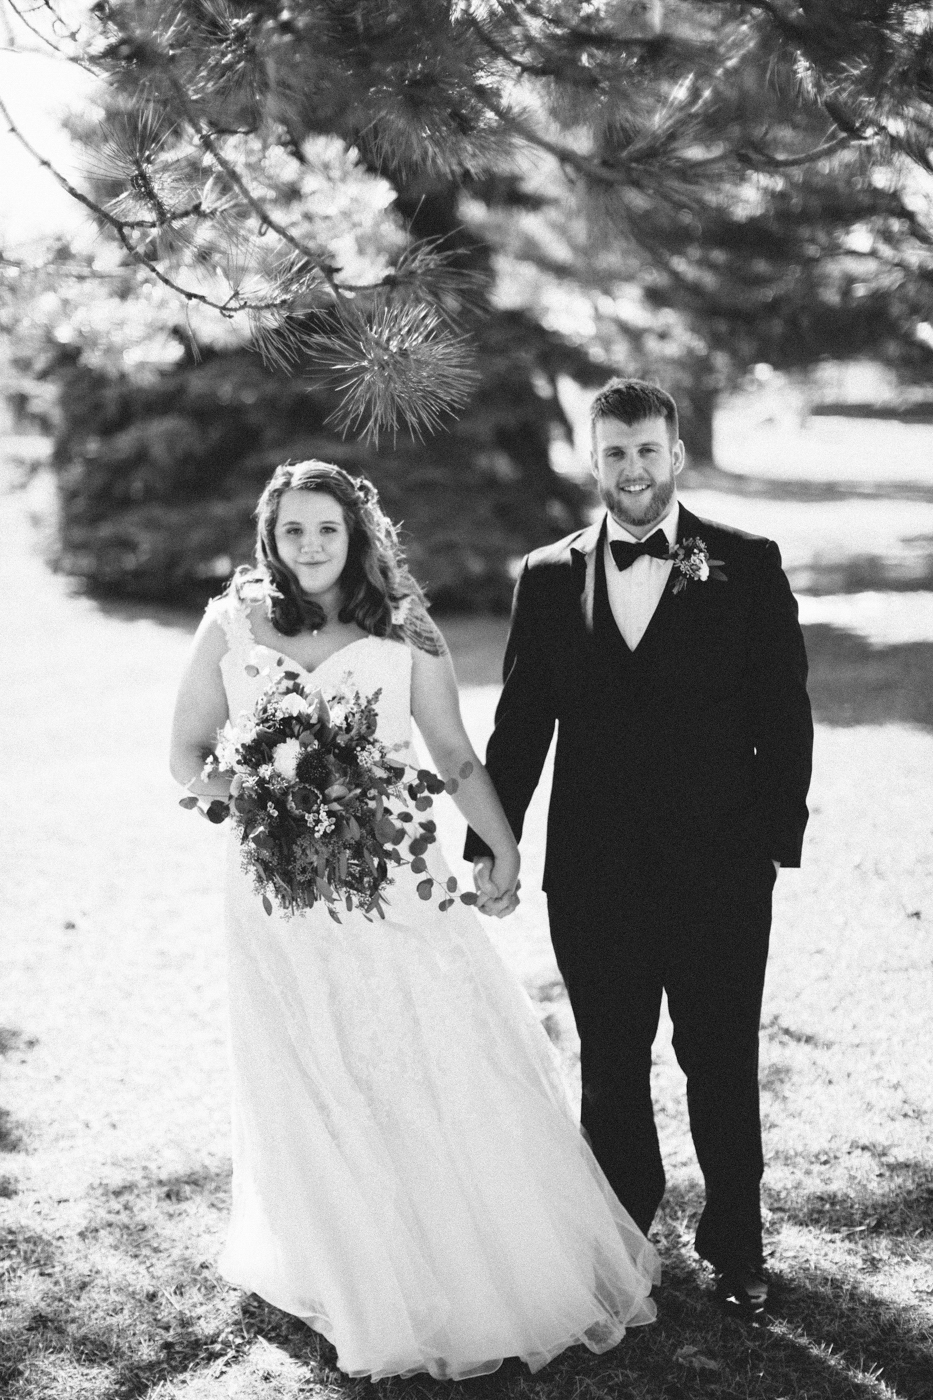 Matt&Amanda_SiouxFalls_DesMoines_Wedding_Photographer_03.jpg